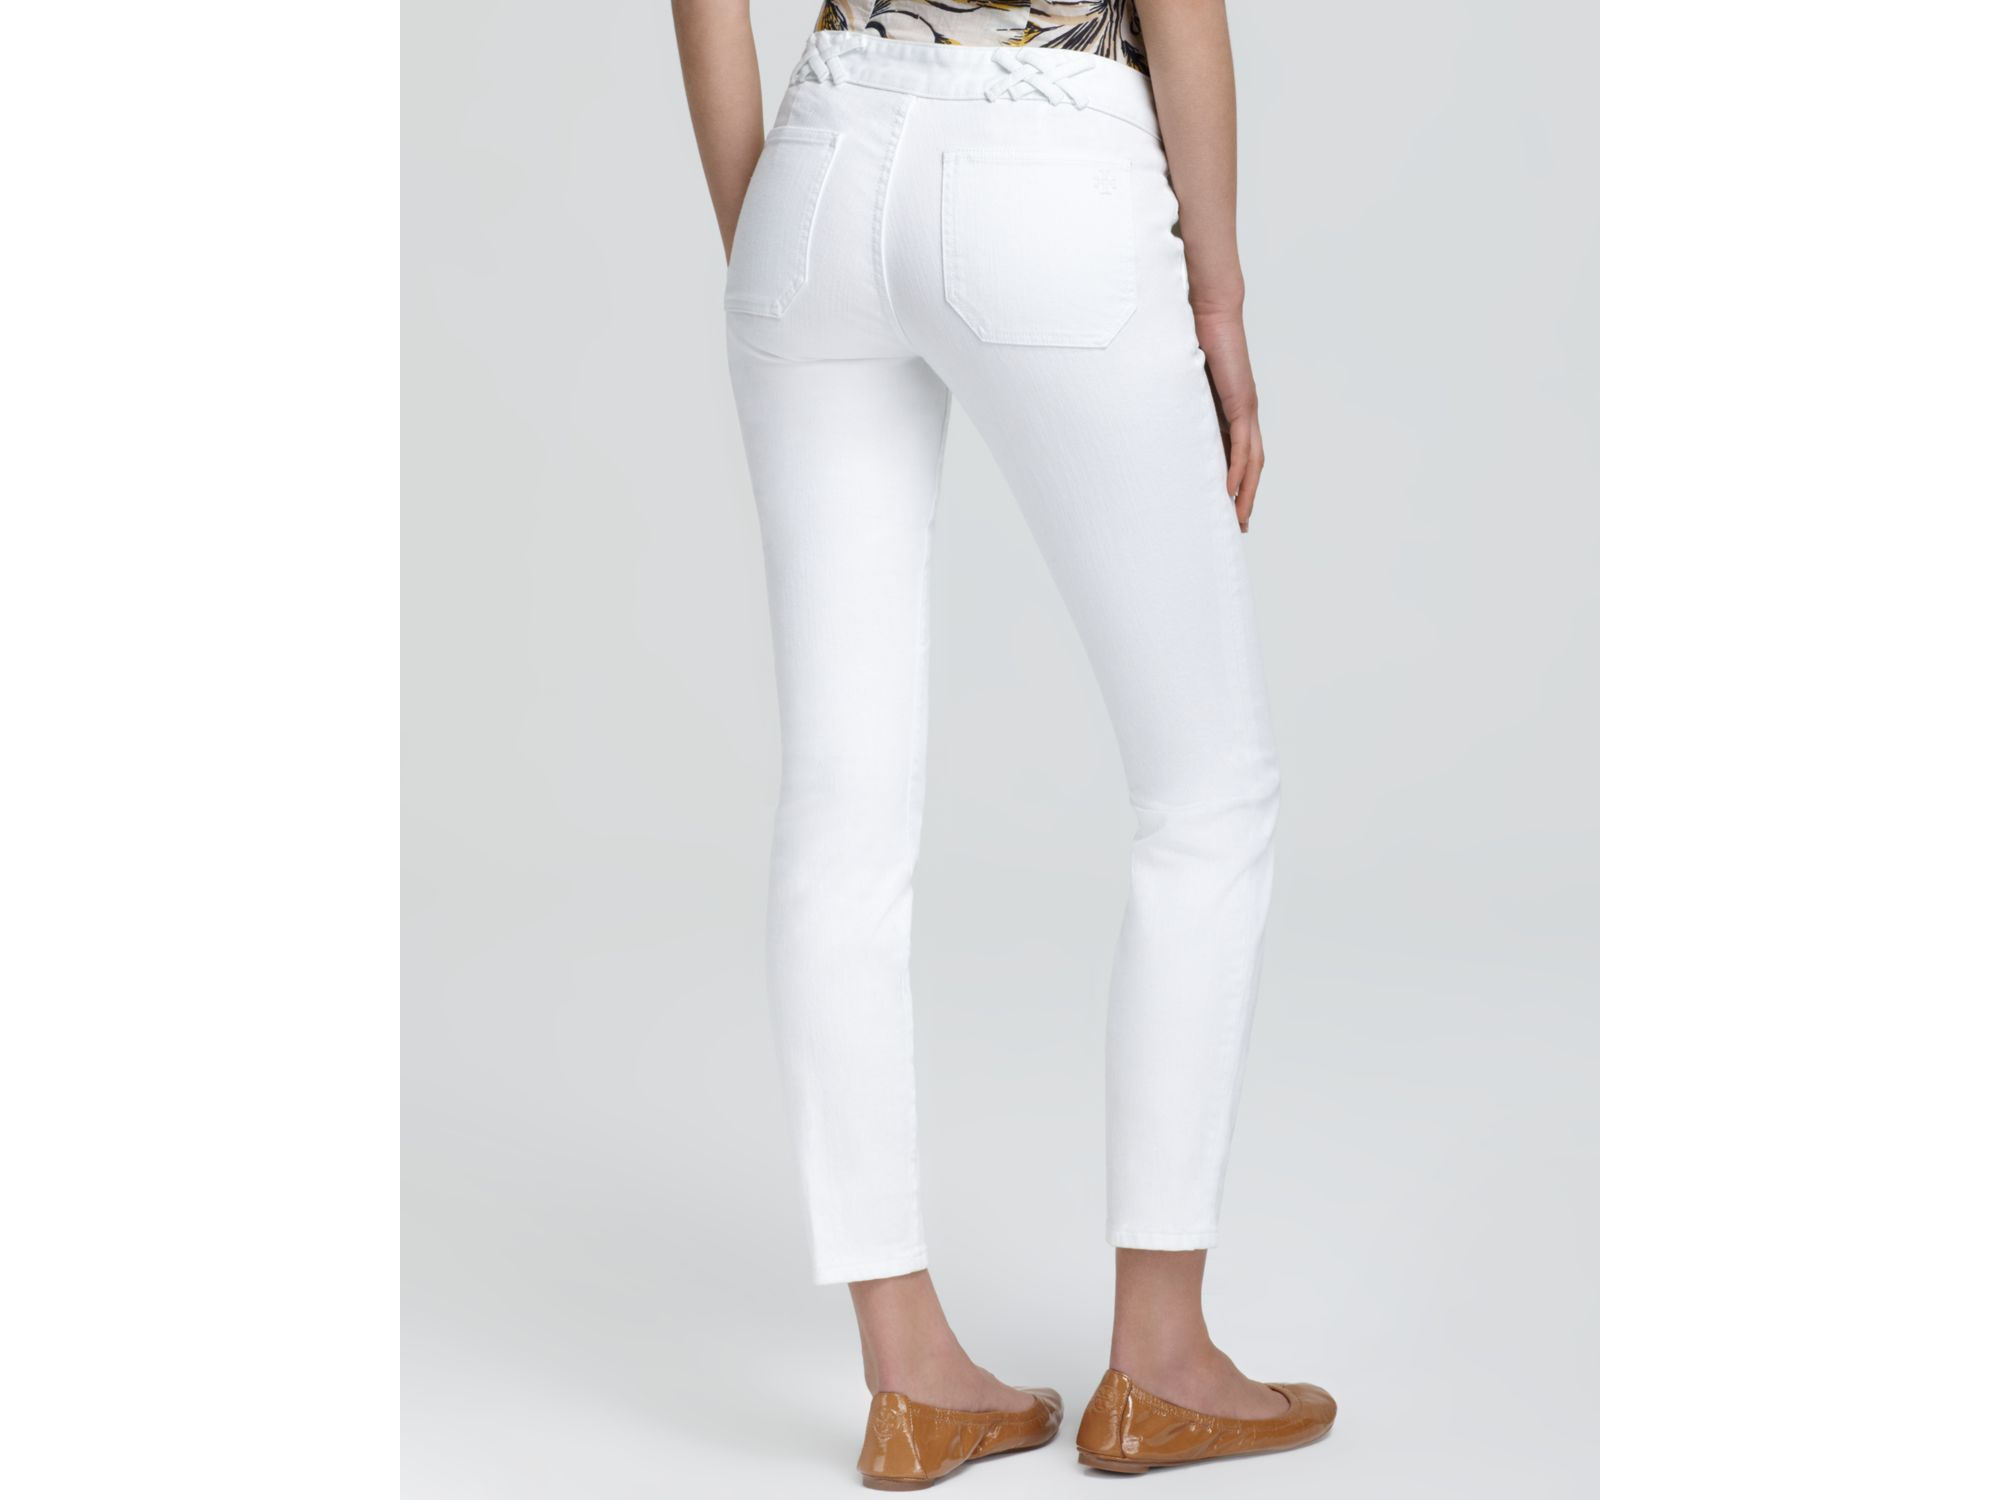 Tory burch Izzy Skinny Ankle Jeans in White | Lyst